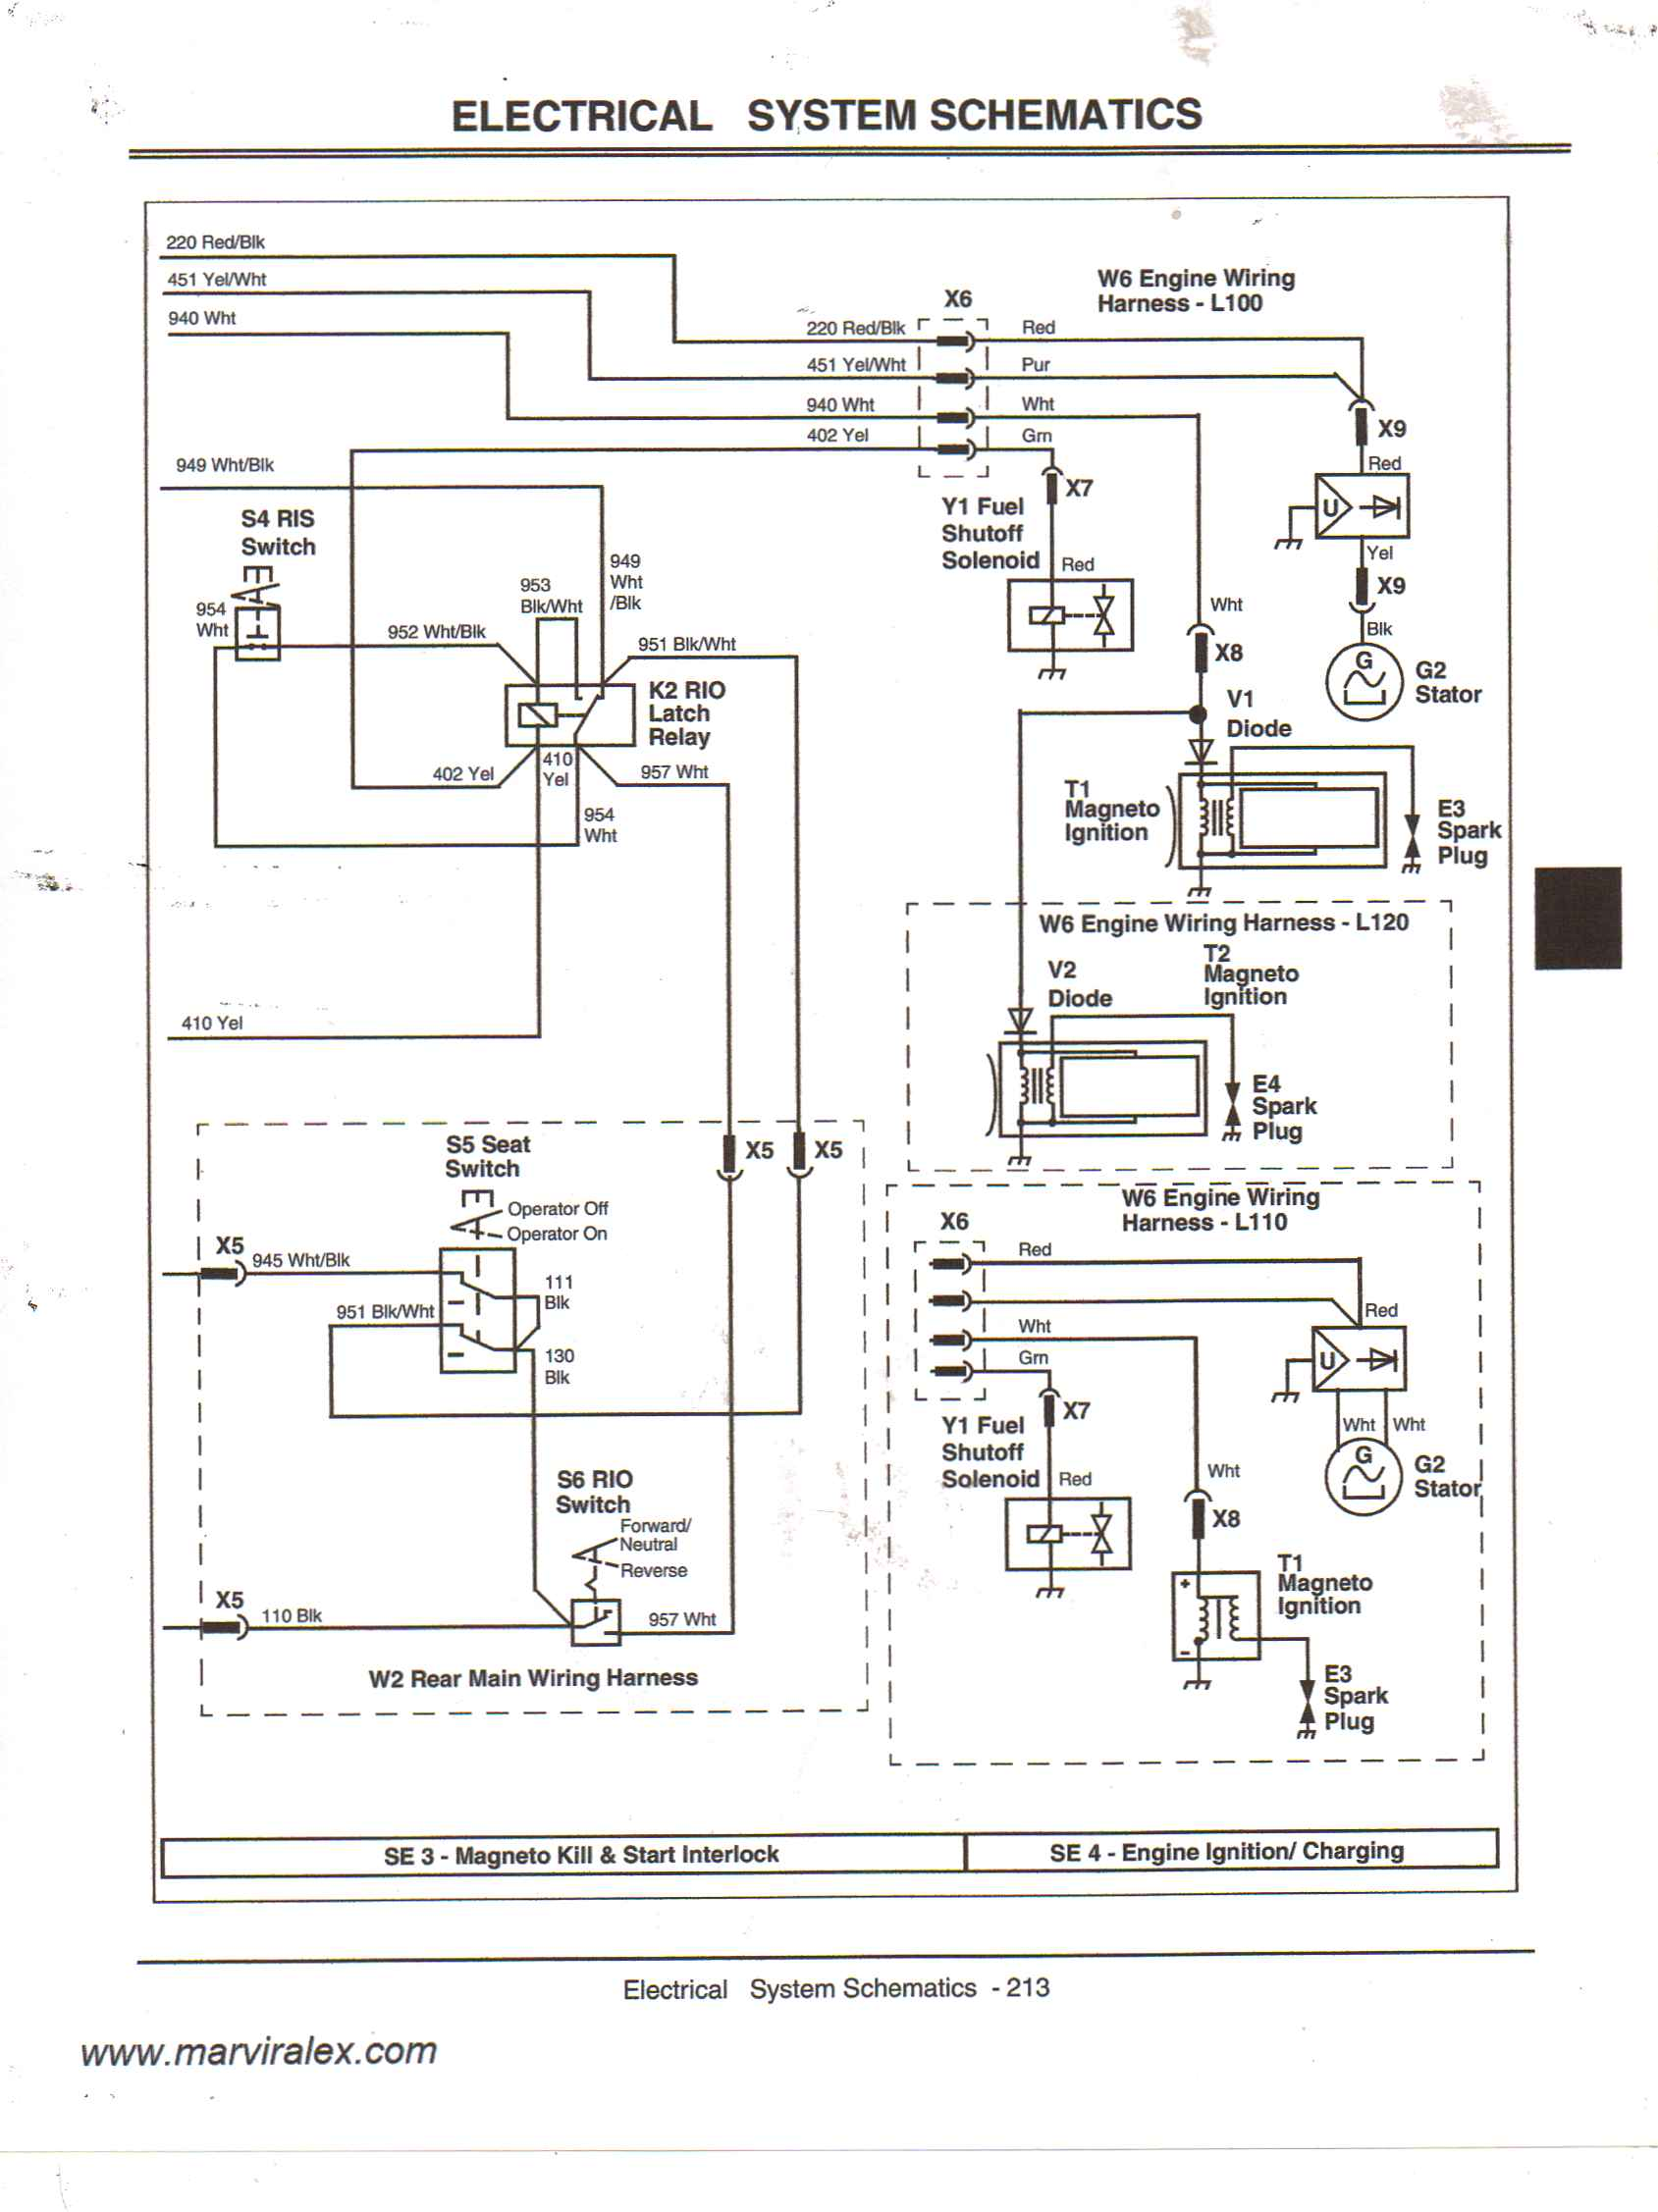 John Deere Wiring Schematics | Wiring Diagram on john deere parts diagrams, john deere radio wiring diagram, john deere ignition switch wiring, john deere diagnostic codes, john deere parts specifications, john deere solenoid schematics, john deere solenoid wiring, john deere maintenance schedule,